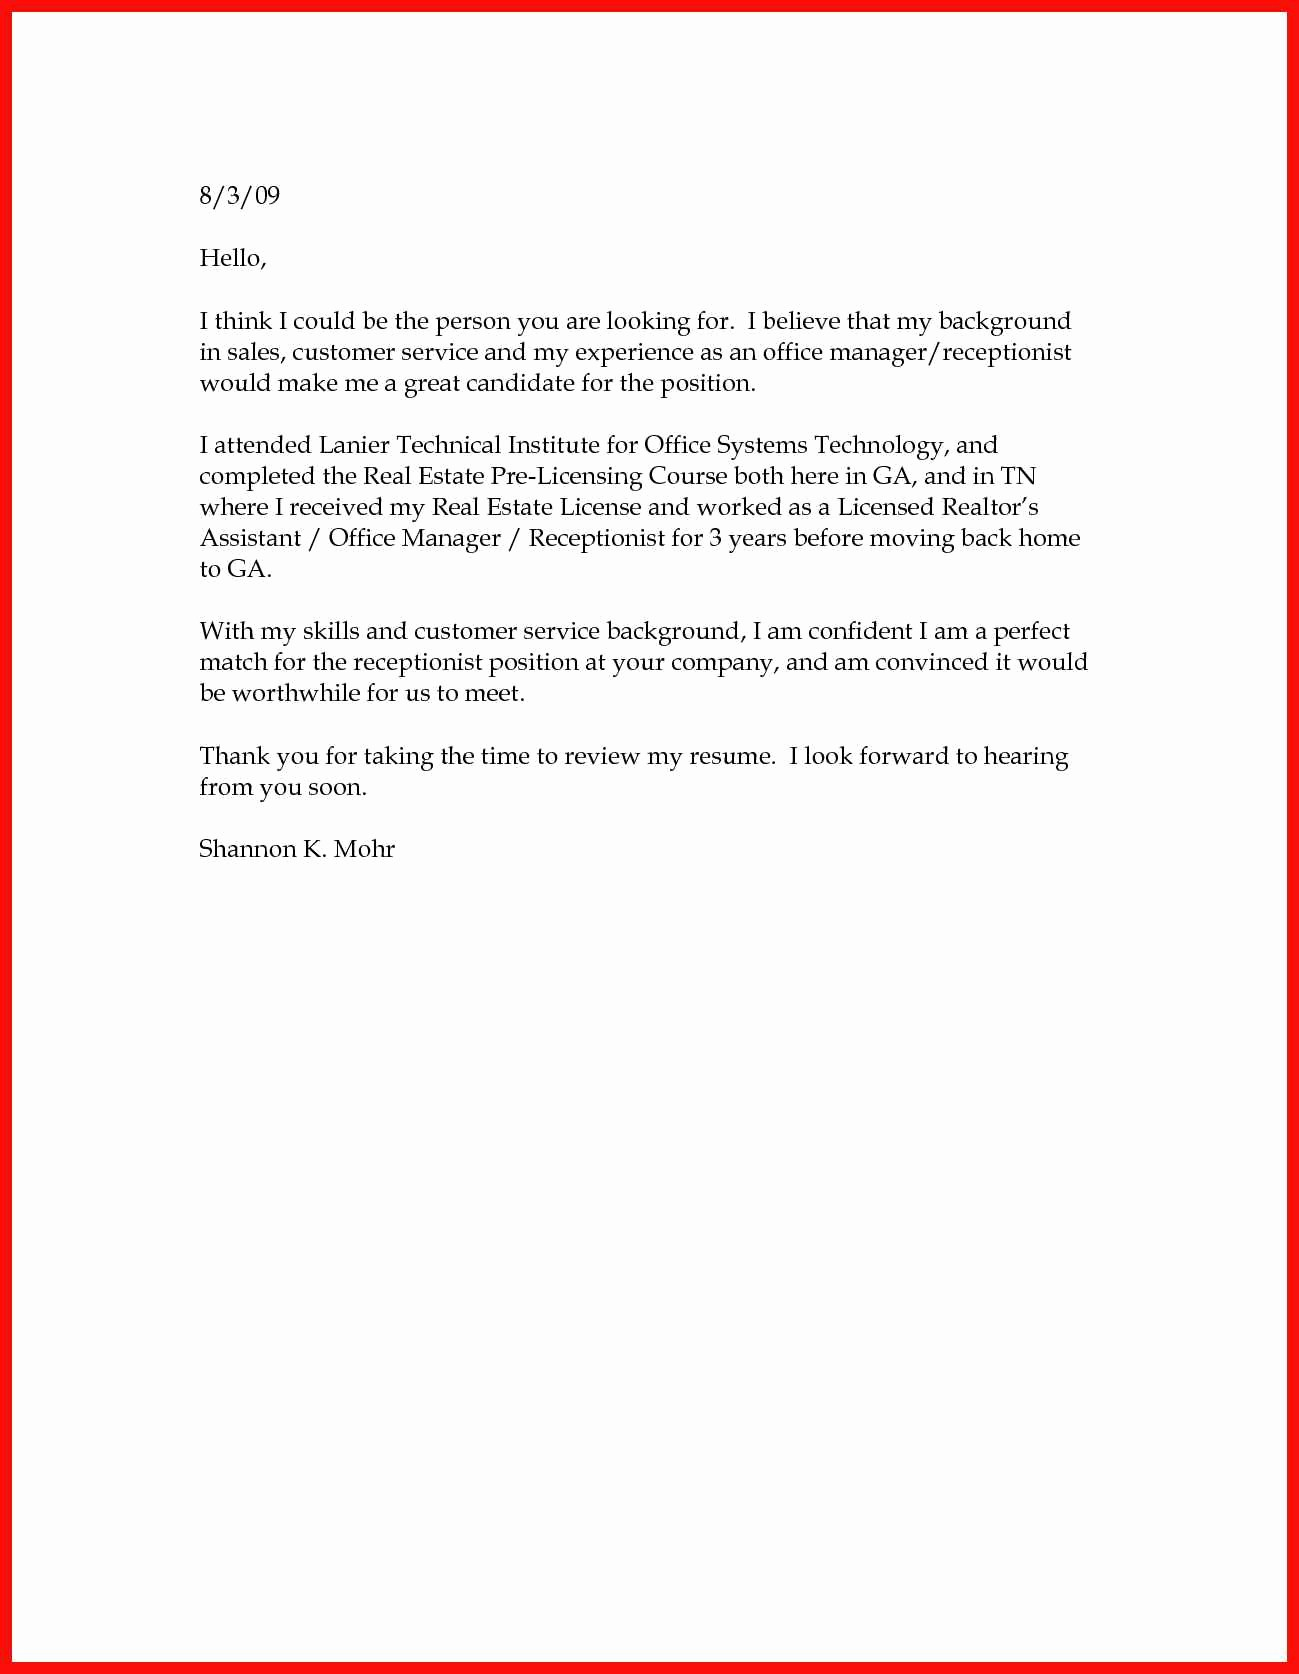 Cover Letter Templates for Resumes Beautiful Basic Cover Letter Sample